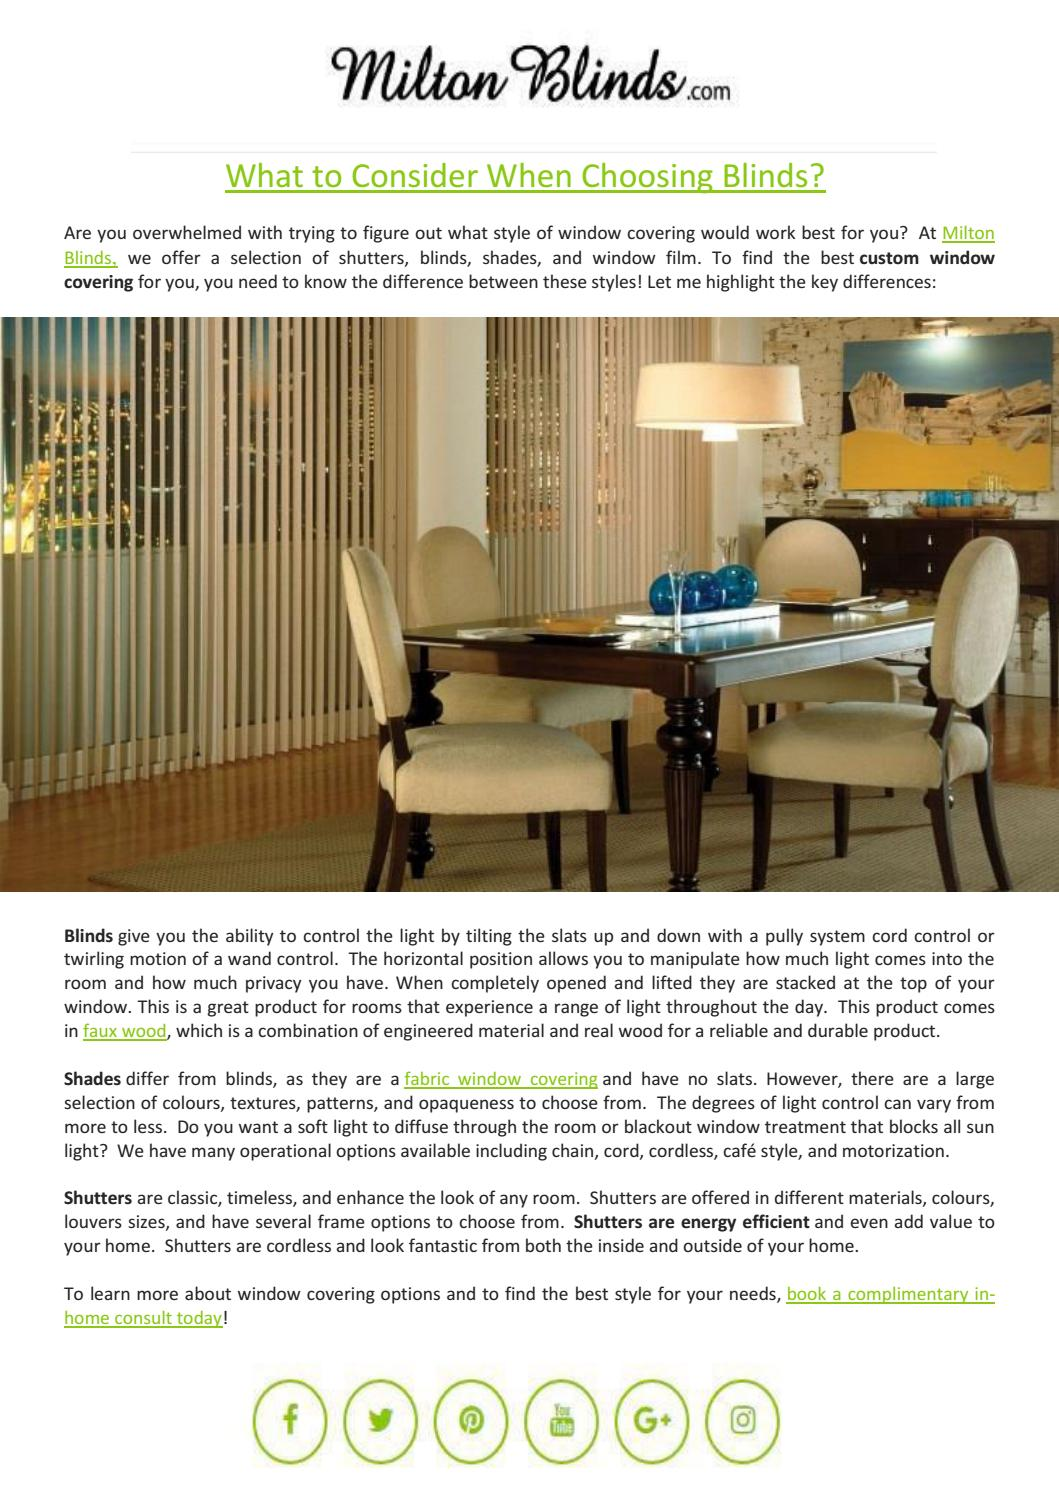 bc6ddbf89608 What to Consider When Choosing Blinds? by Milton Blinds - issuu